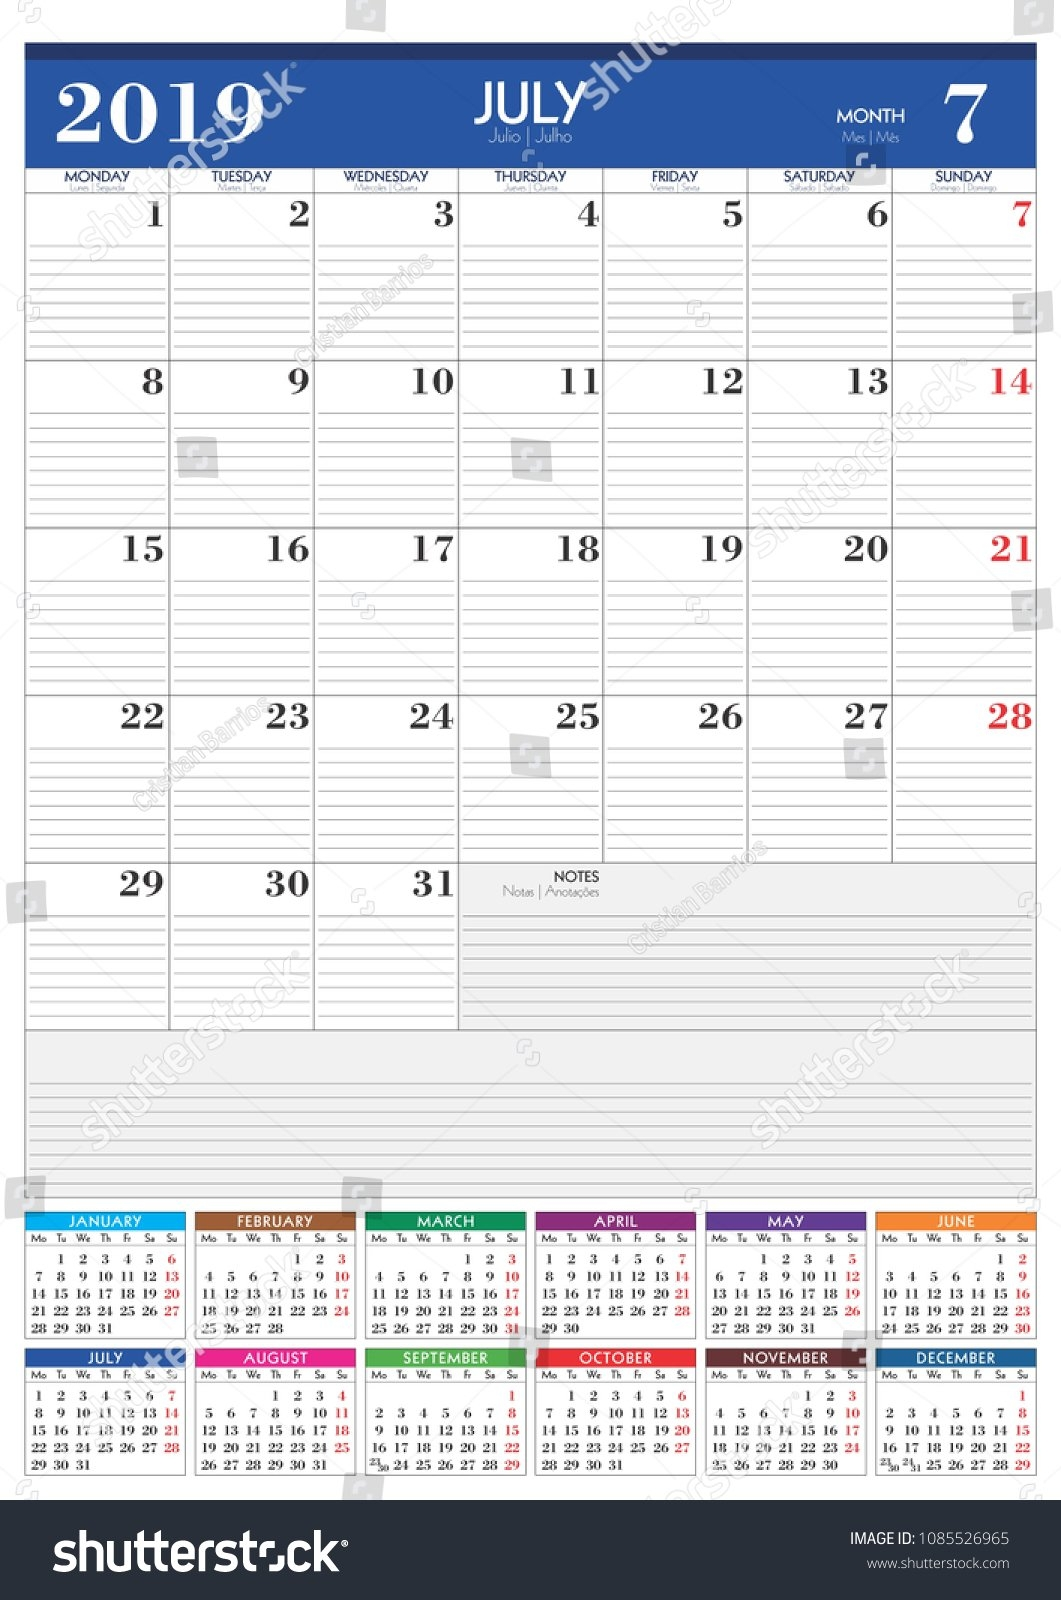 Monthly Wall Planner 2019 Calendar A 3 Stock Vector (Royalty Free July 7 2019 Calendar